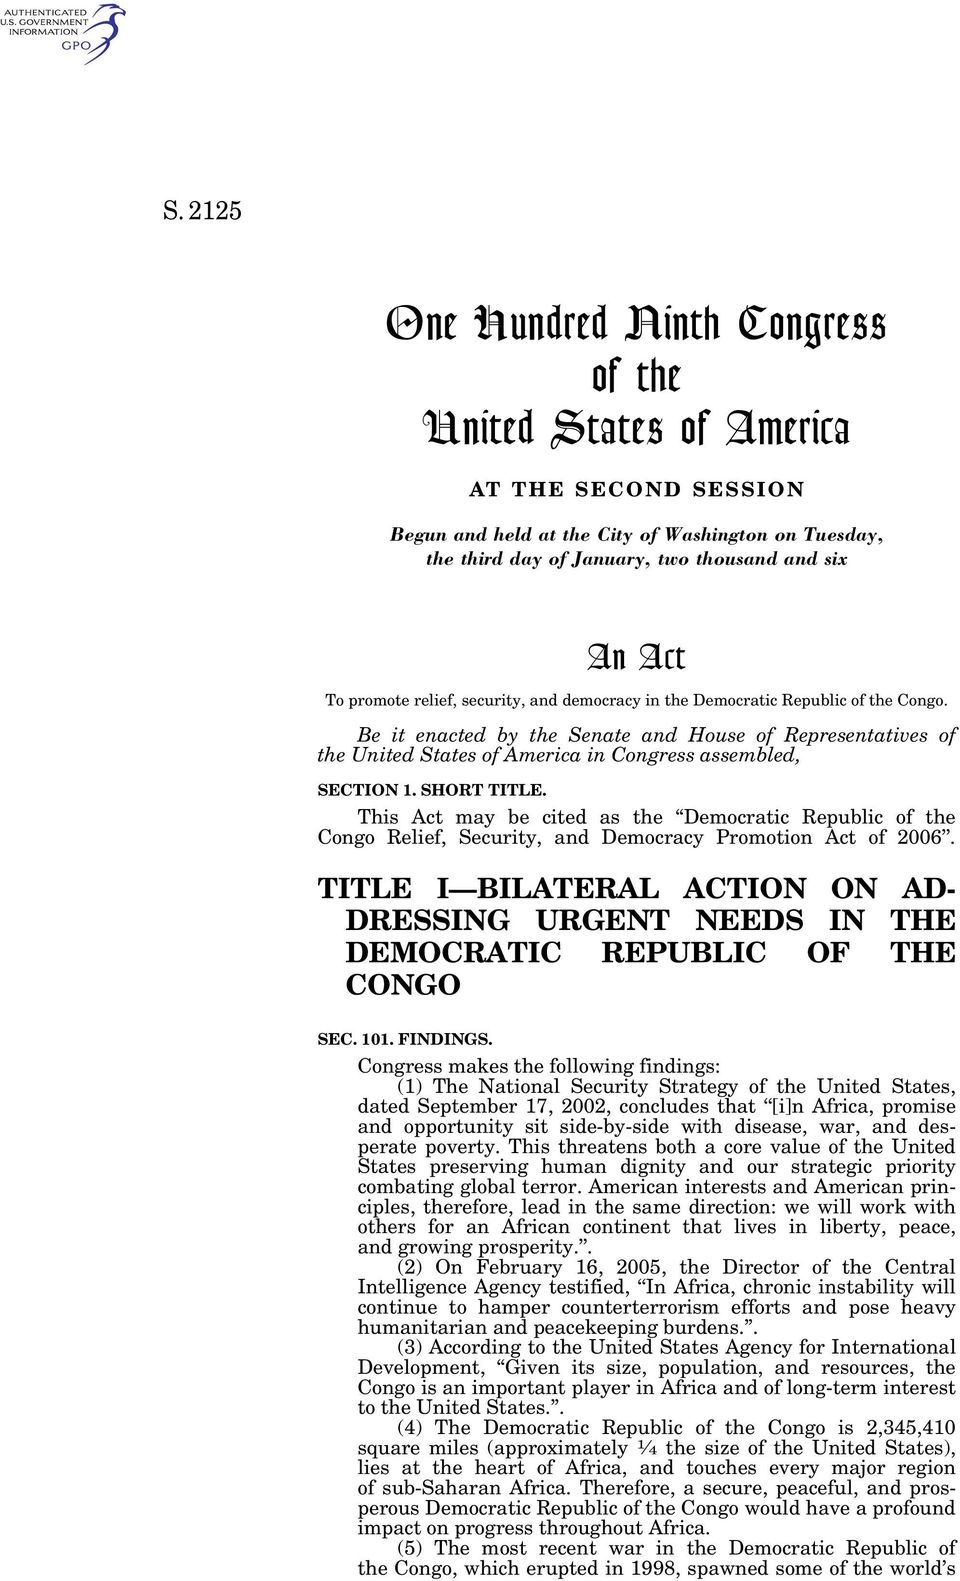 Be it enacted by the Senate and House of Representatives of the United States of America in Congress assembled, SECTION 1. SHORT TITLE.